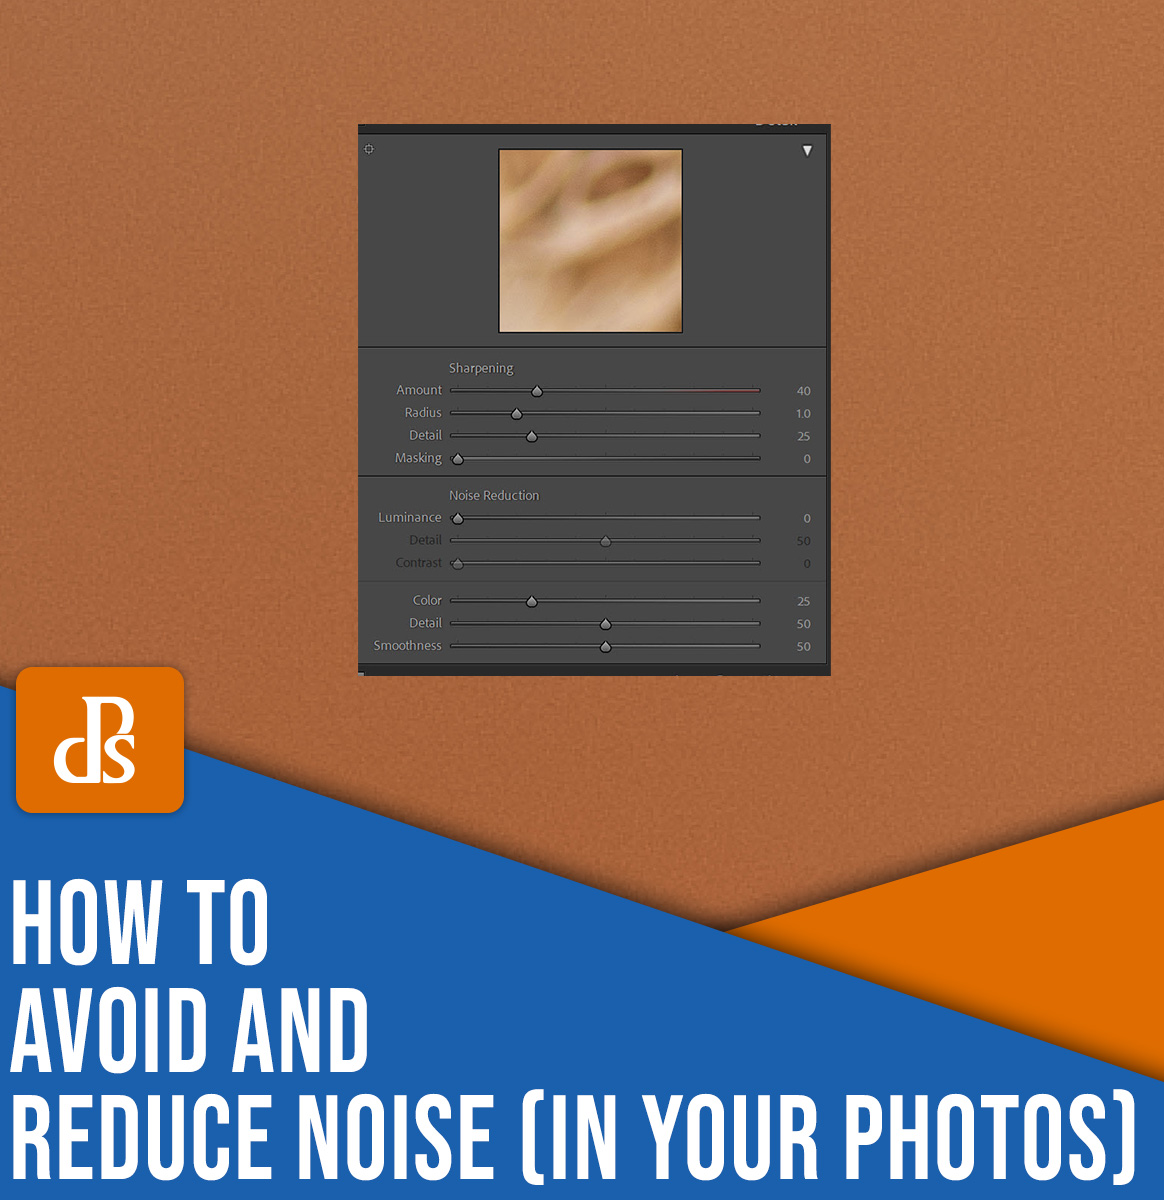 How to Avoid and Reduce Noise in Your Photos (2021 Guide)